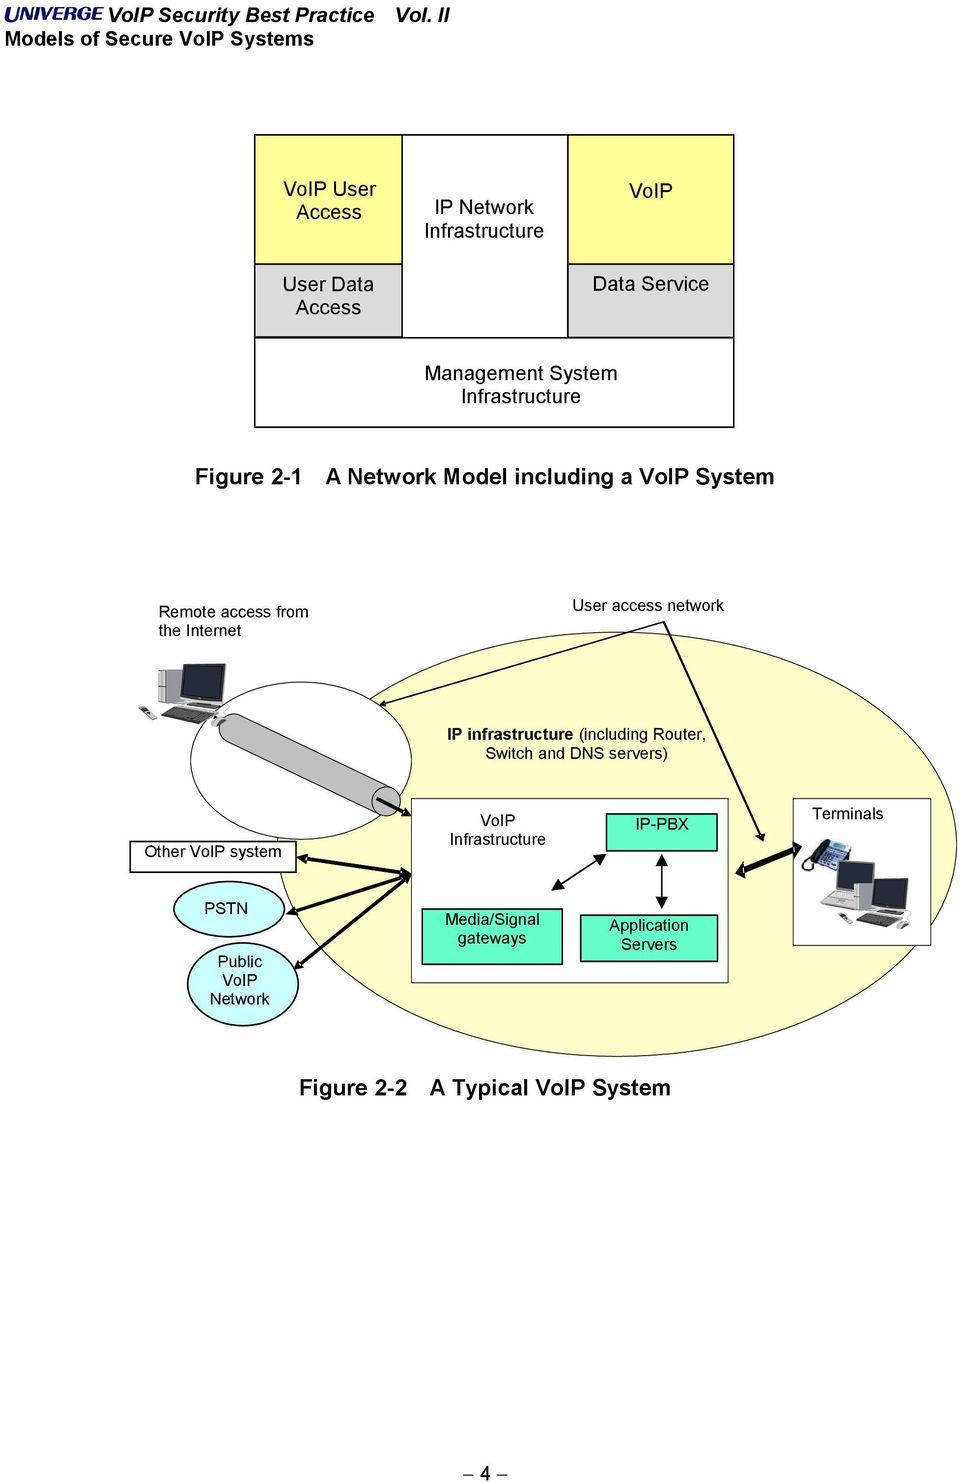 access network IP infrastructure (including Router, Switch and DNS servers) Other VoIP system VoIP